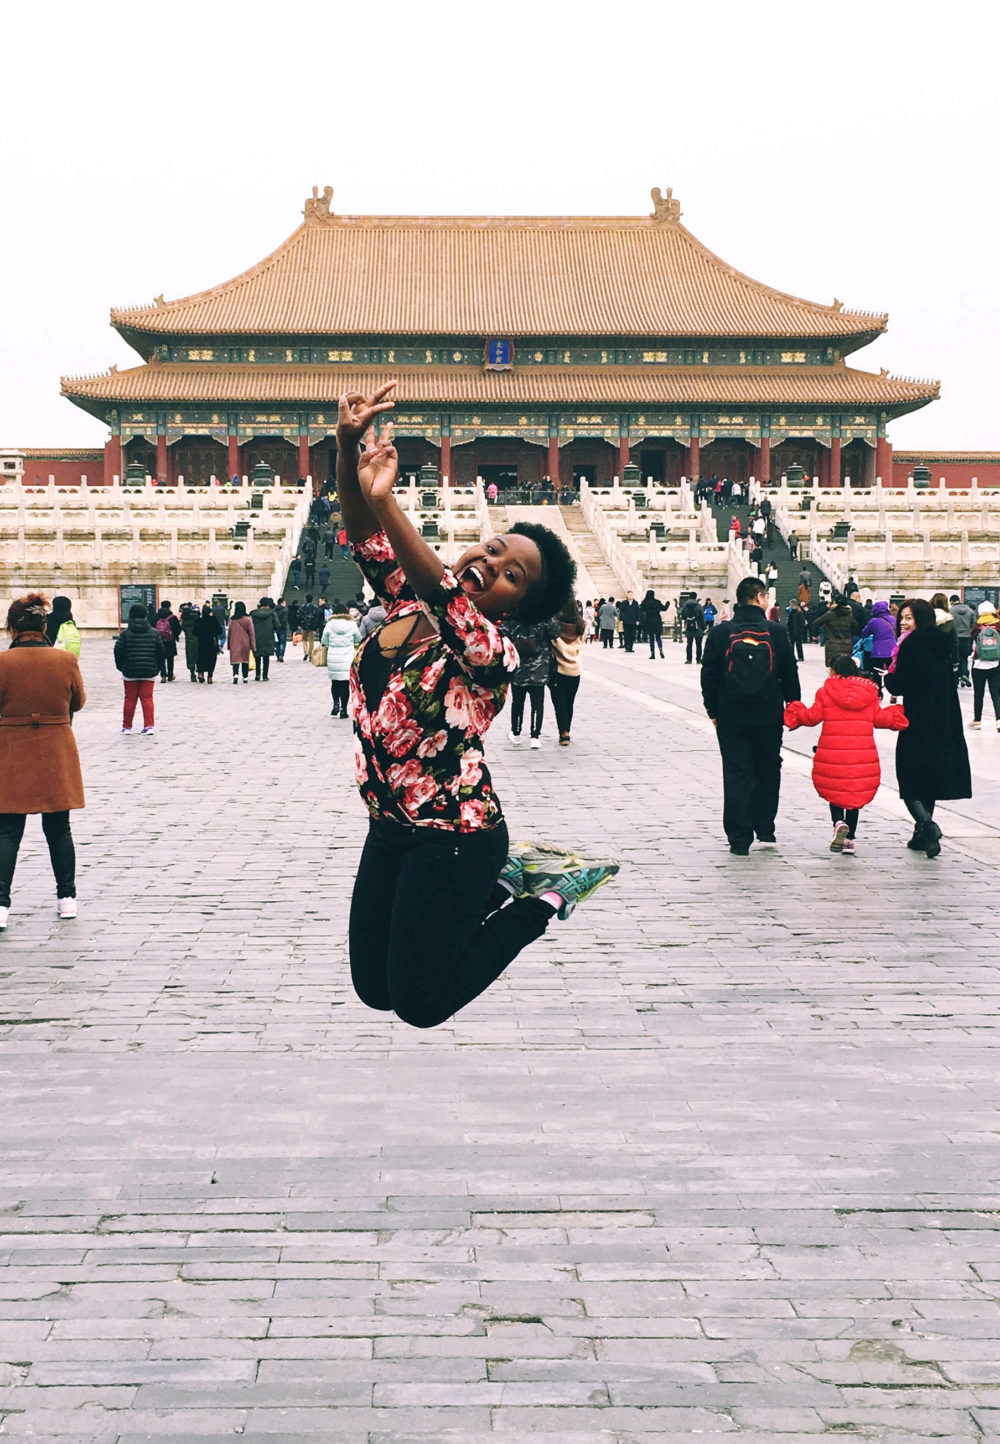 Junior Liliane Kevine Ikirezi, from Kigali, Rwanda, at the Forbidden City in Beijing.